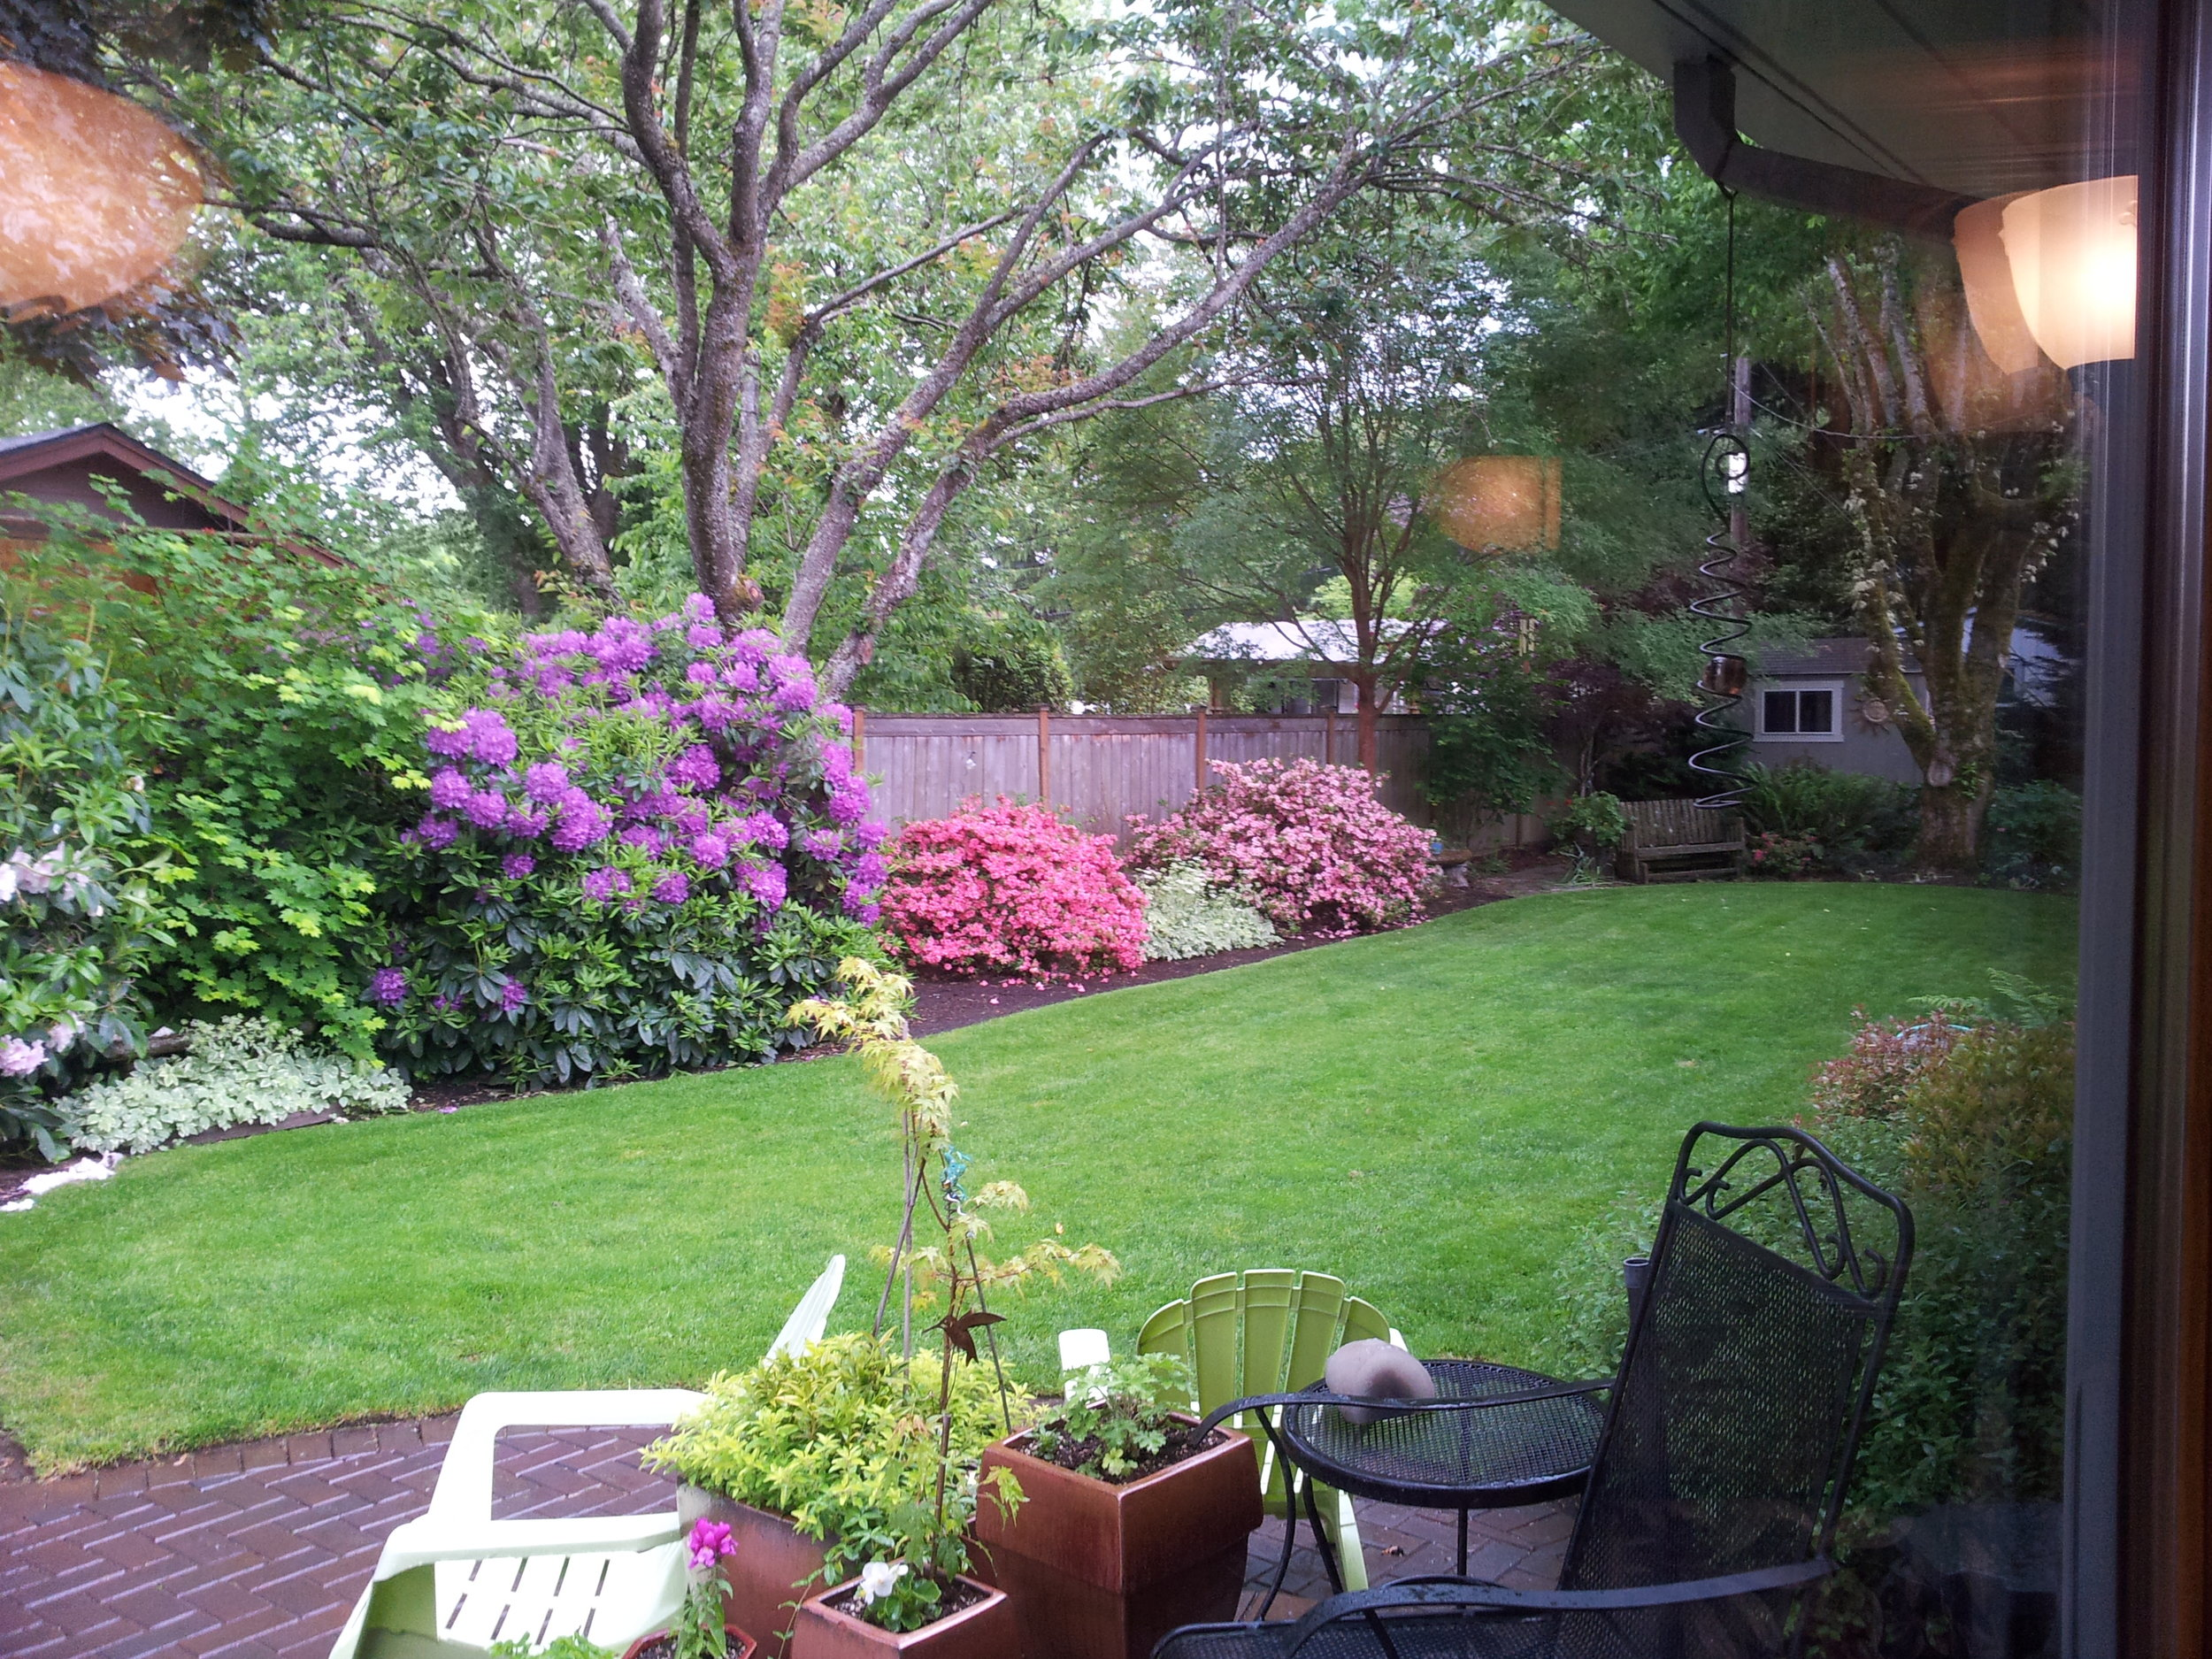 The interior was very dated but with a backyard like this, who cares???